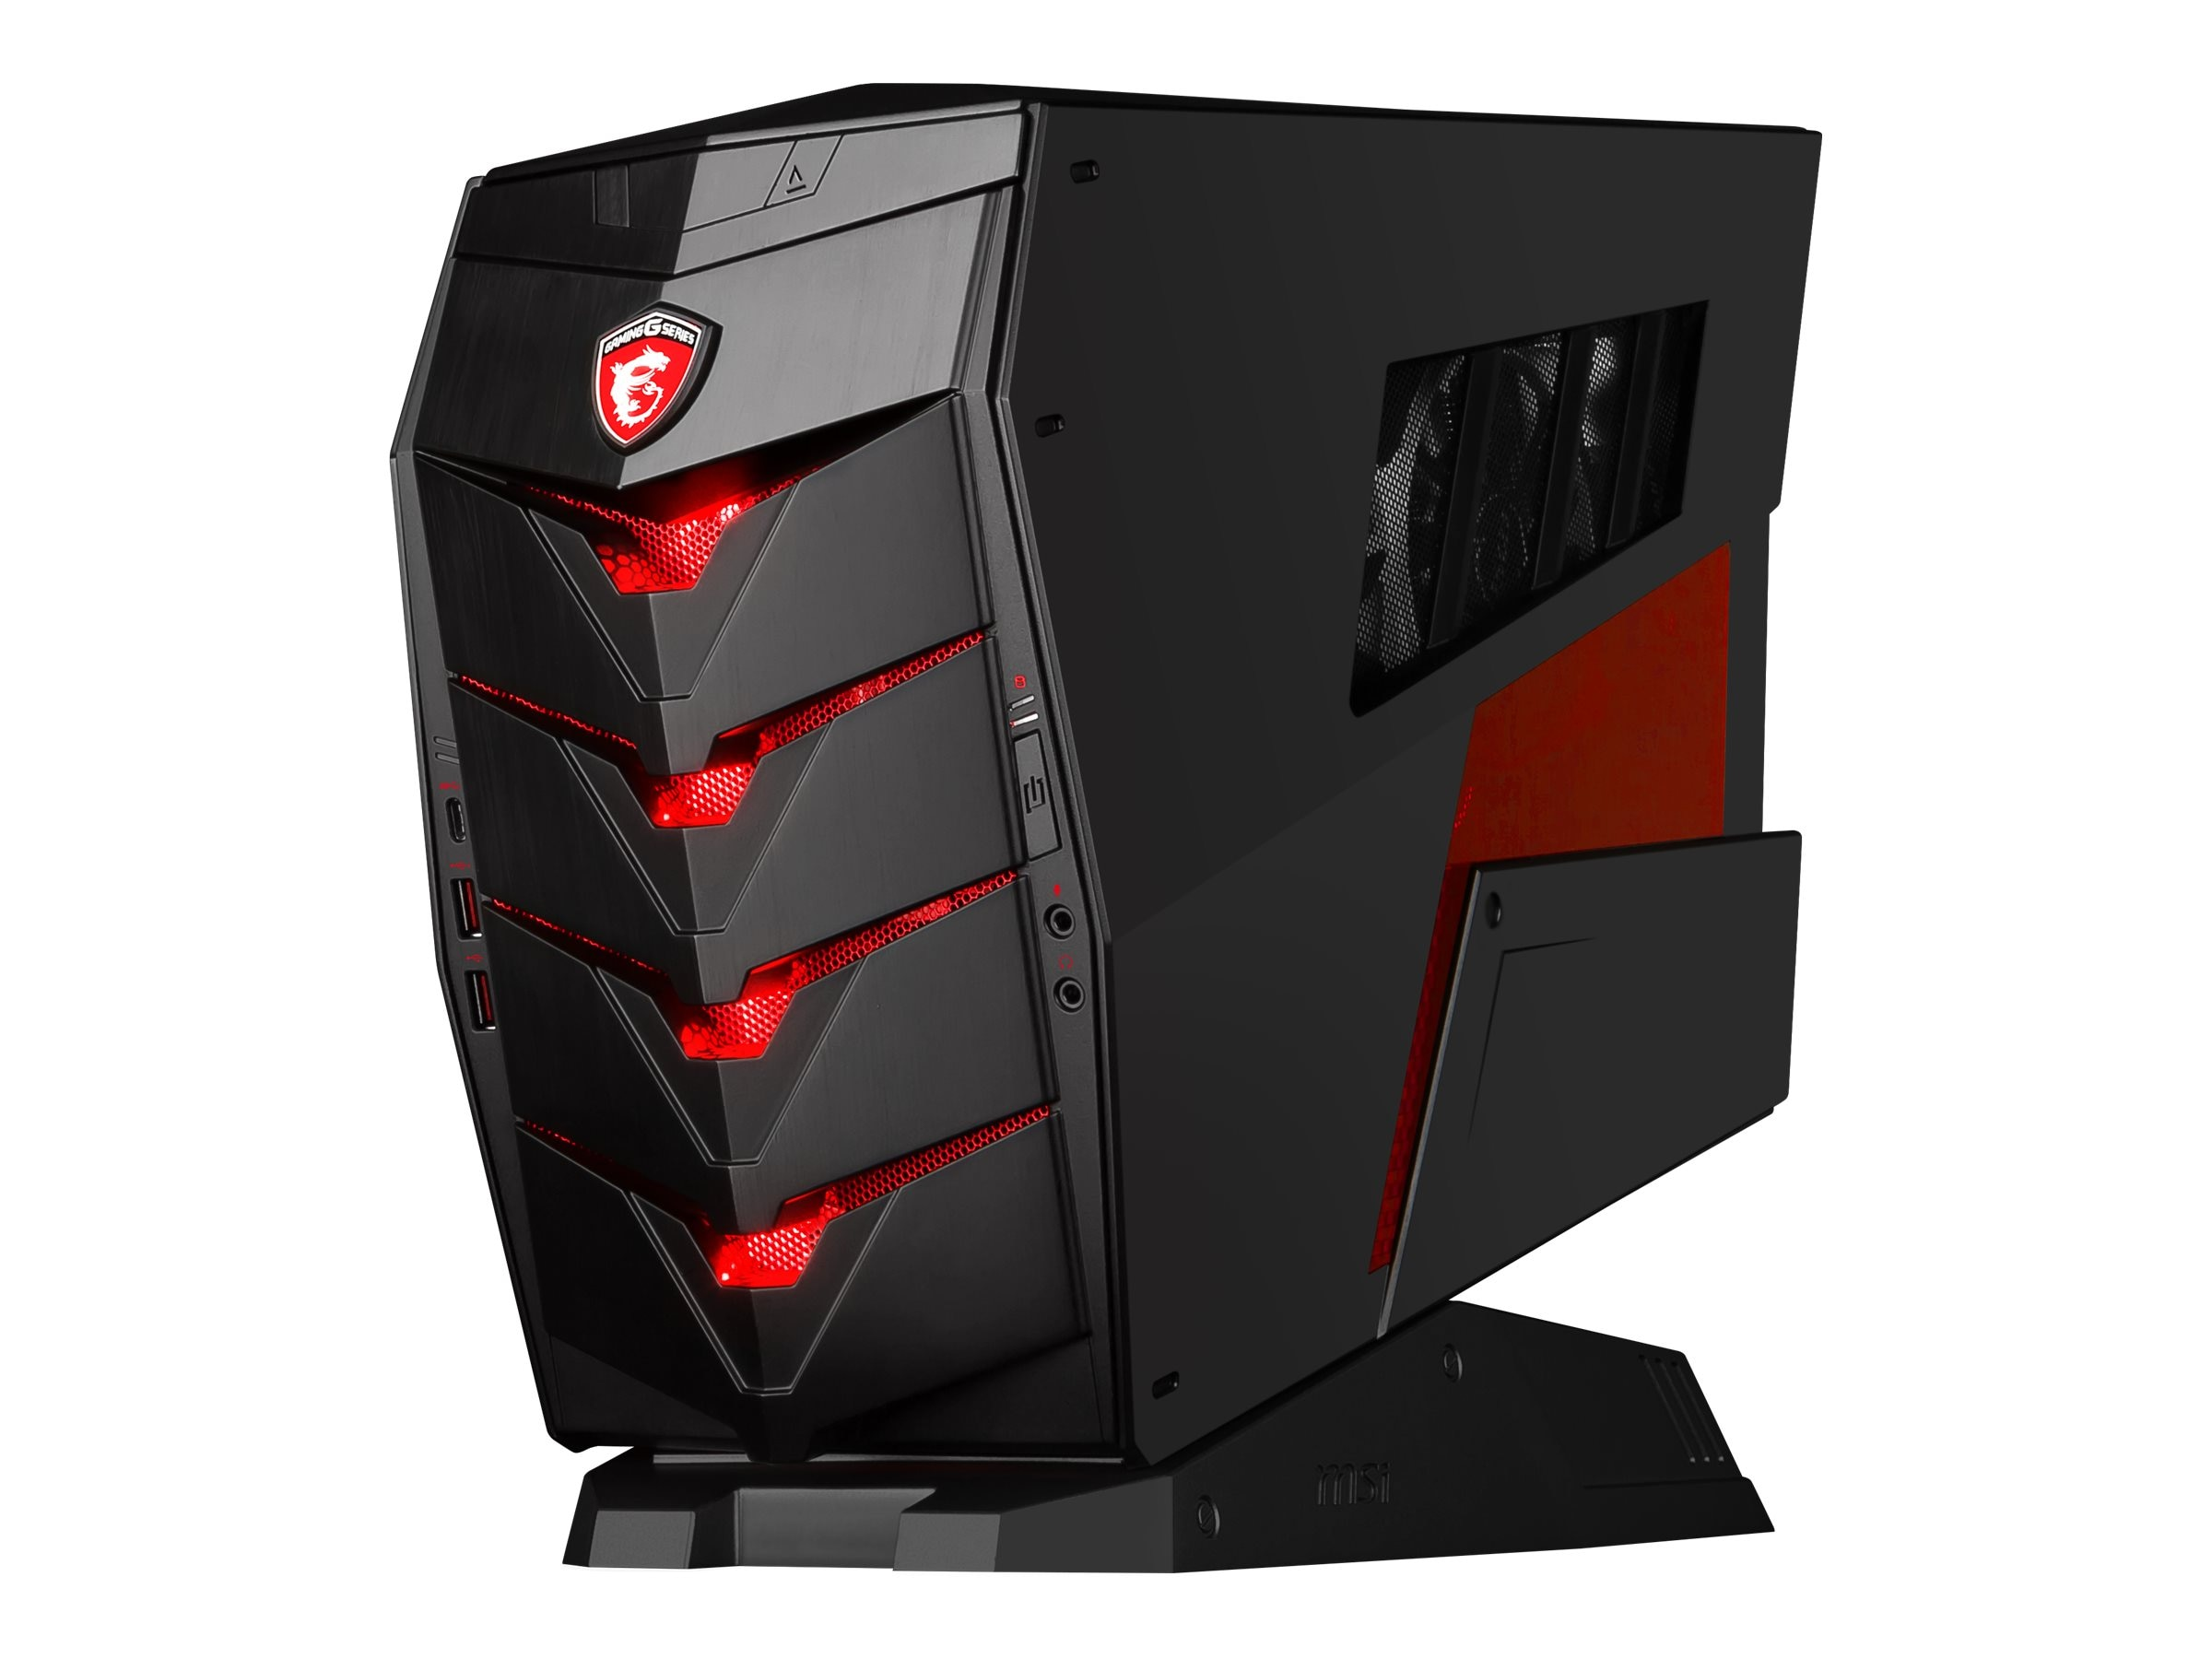 MSI Barebones, AEGIS Gaming Tower B150 Max.32GB DDR4 PCIe GbE ac BT, AEGIS-001BUS, 32259551, Barebones Systems